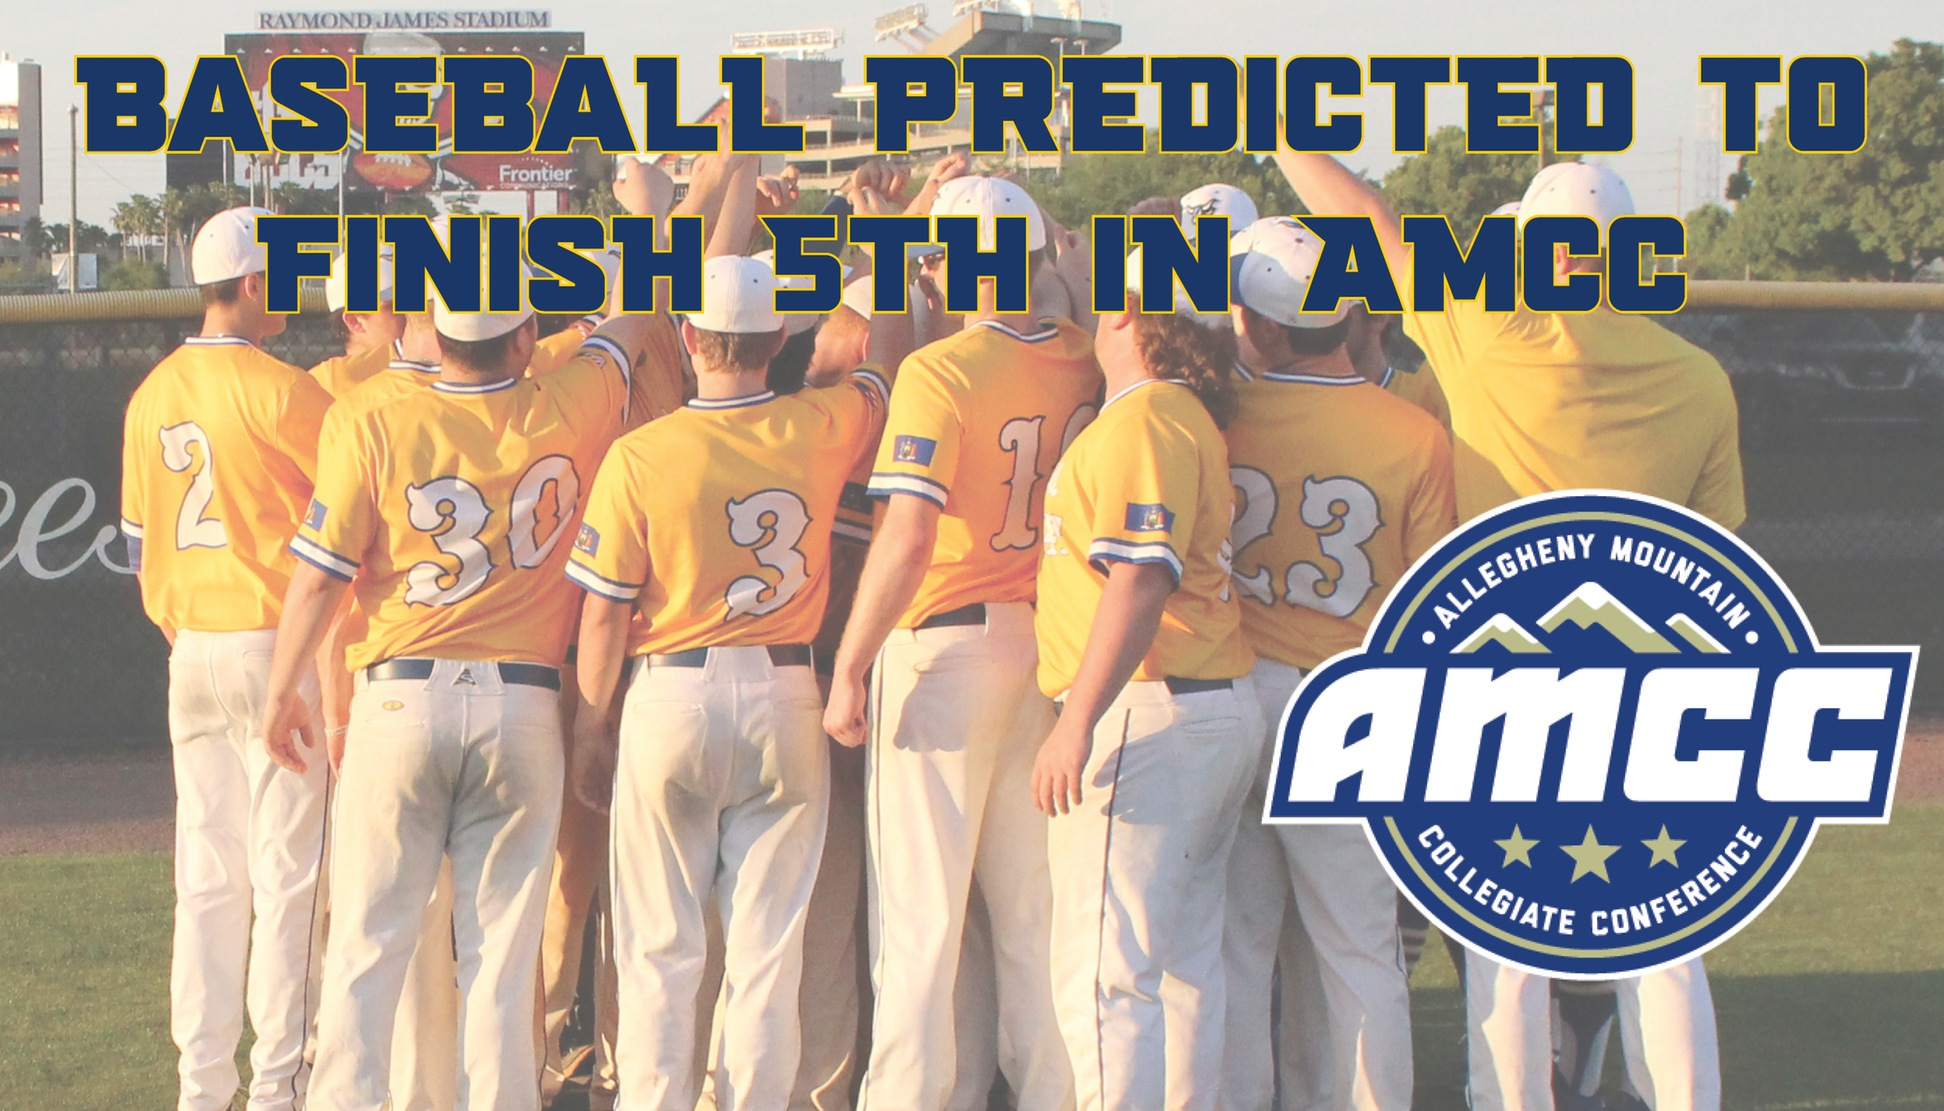 Baseball team predicted to finish 5th in AMCC